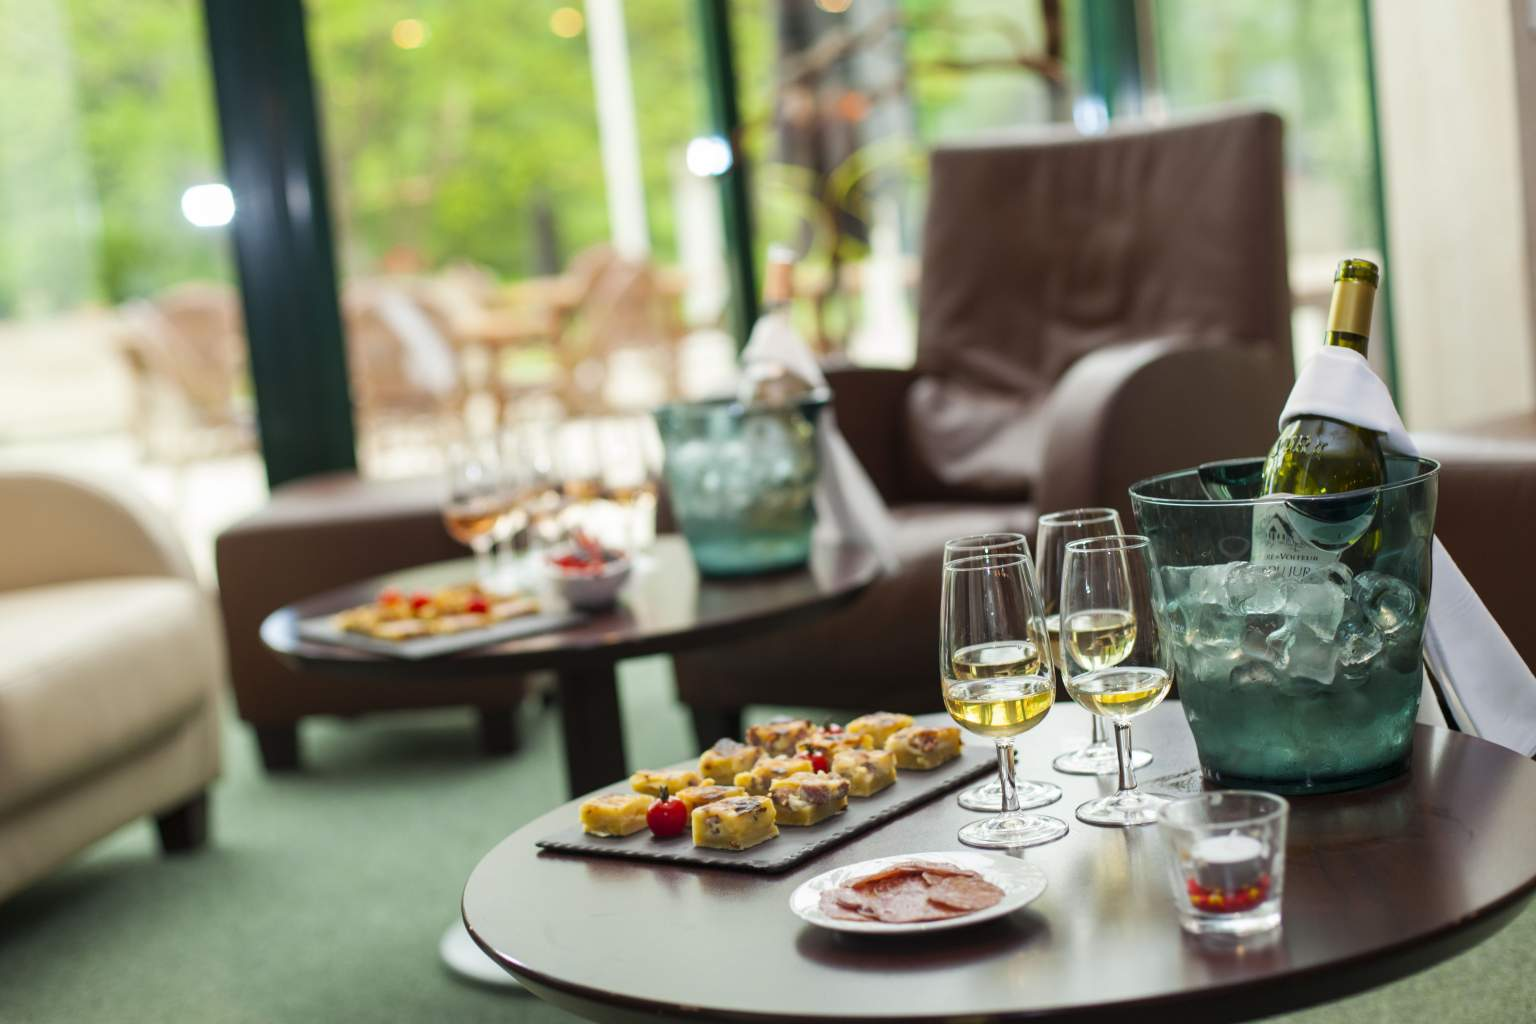 Aperitif in the lounge area